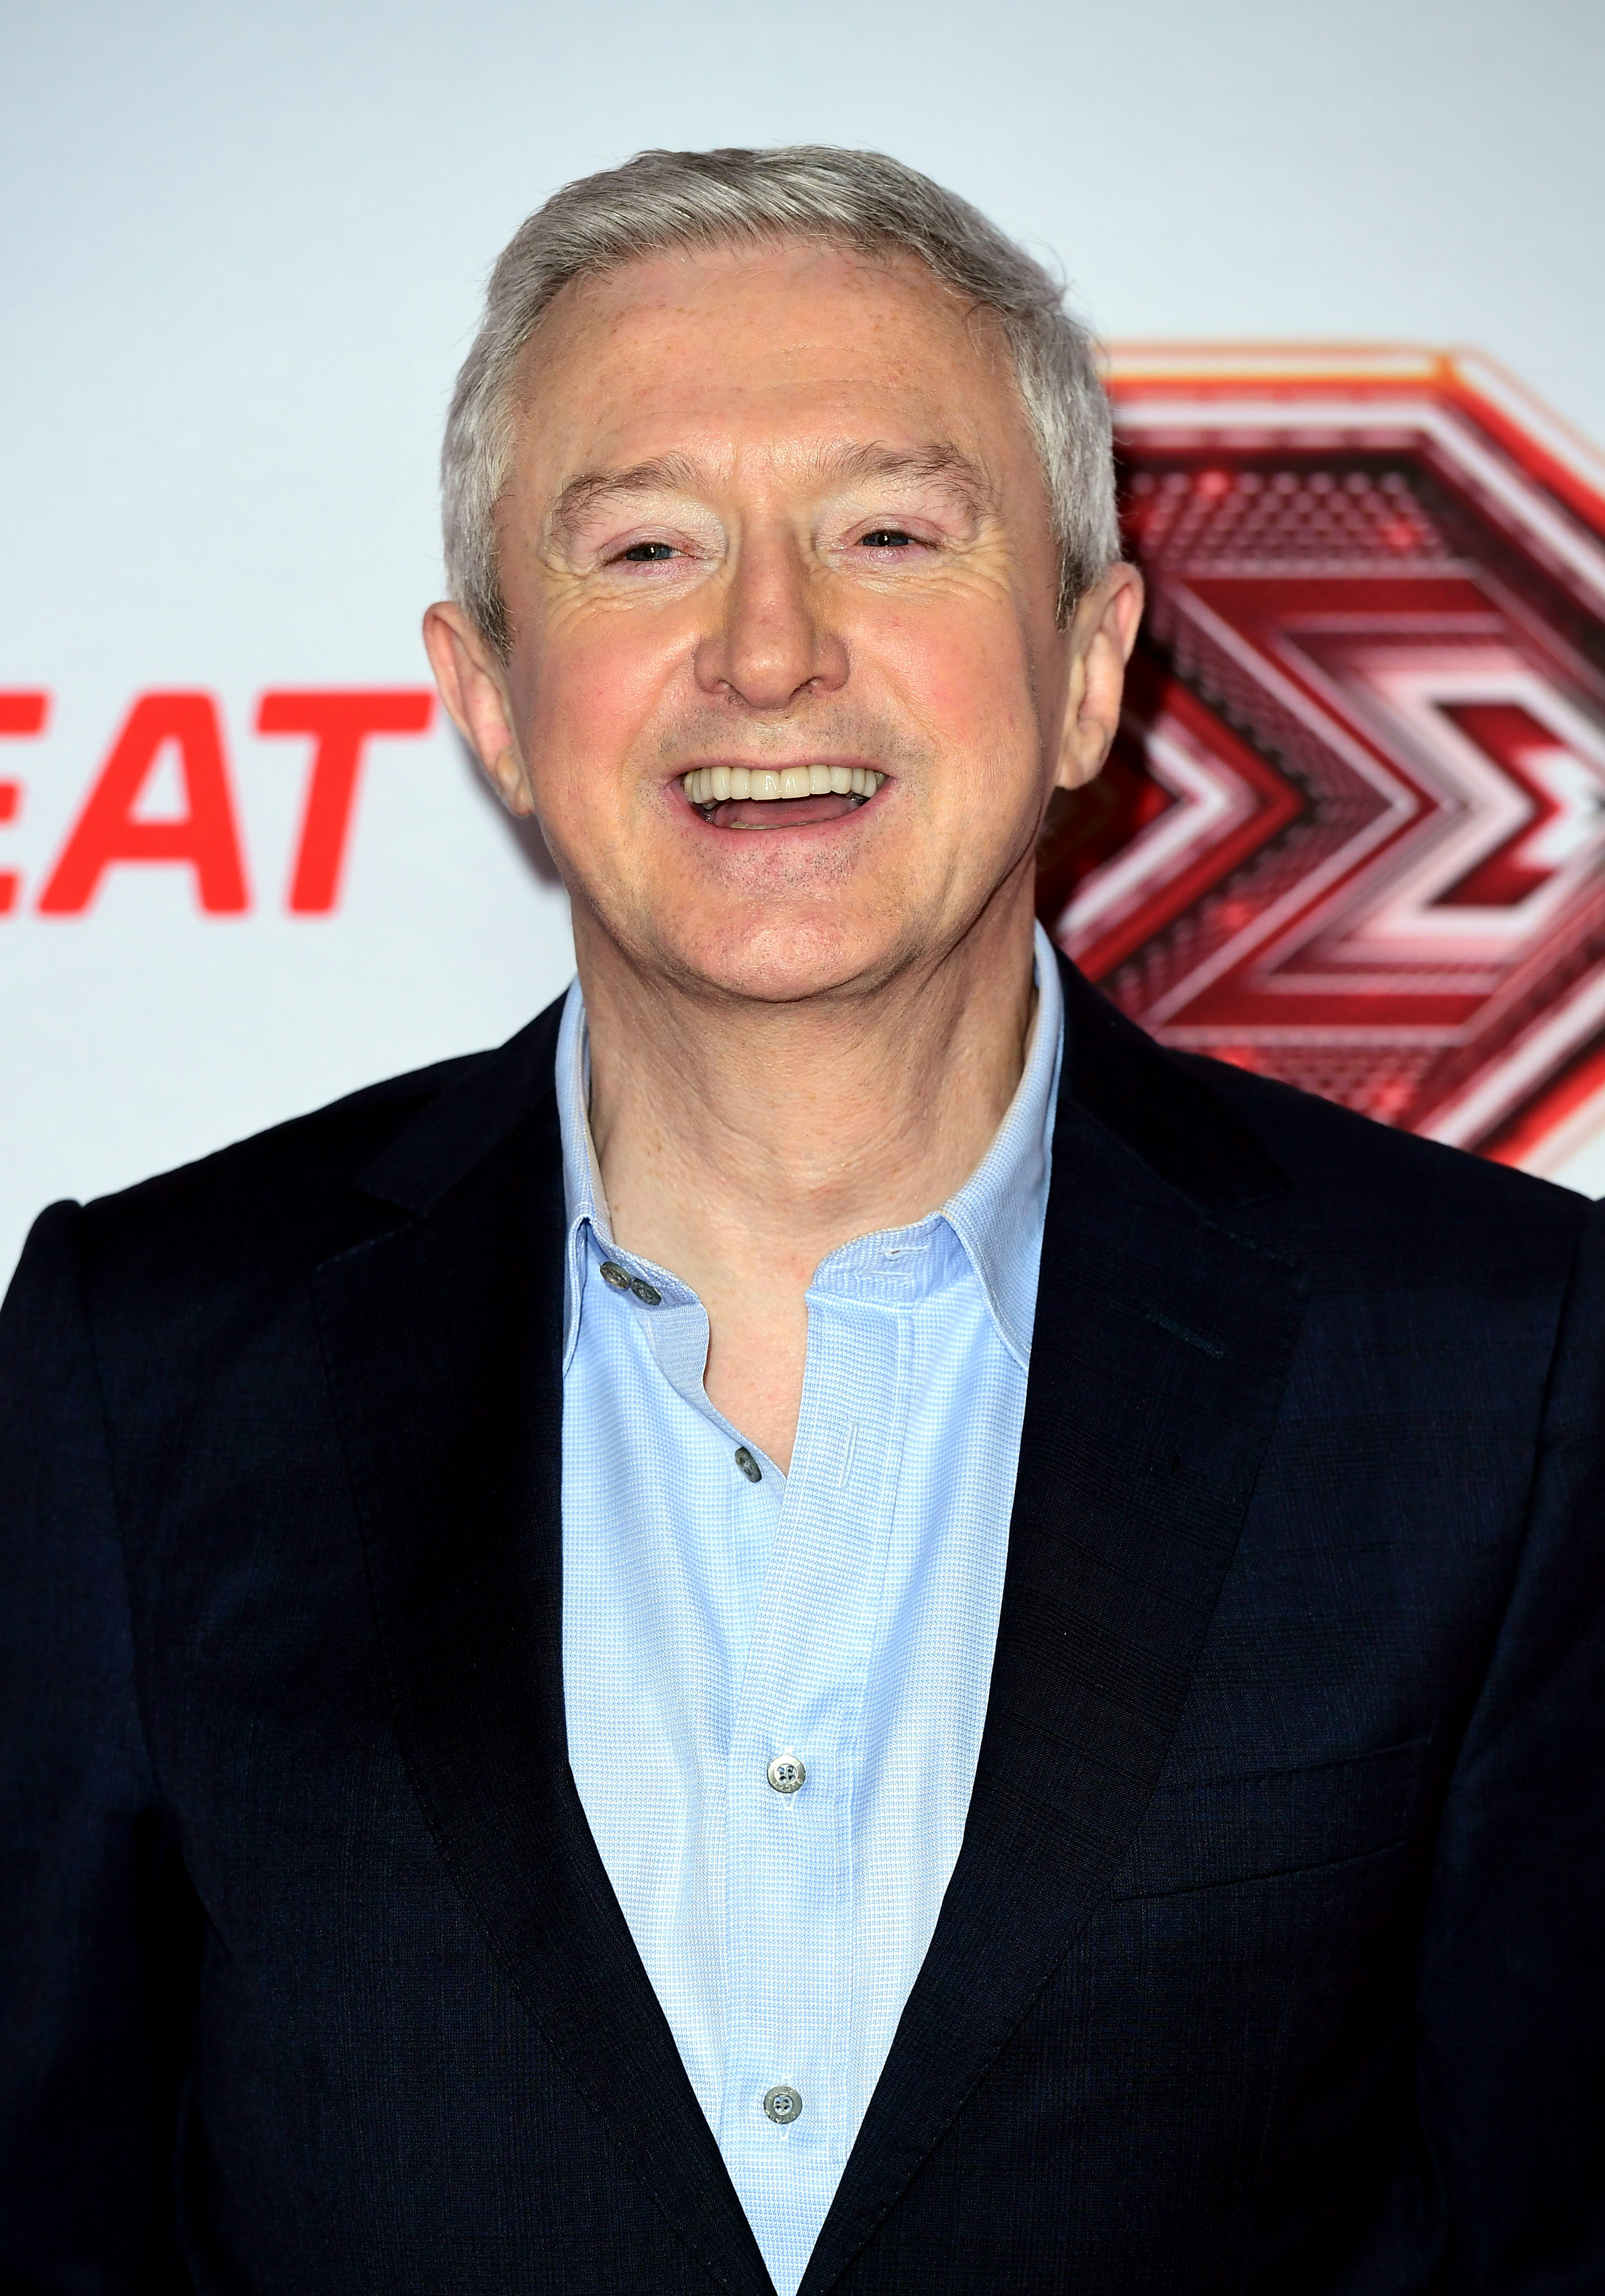 Louis Walsh (Matt Crossick/PA)